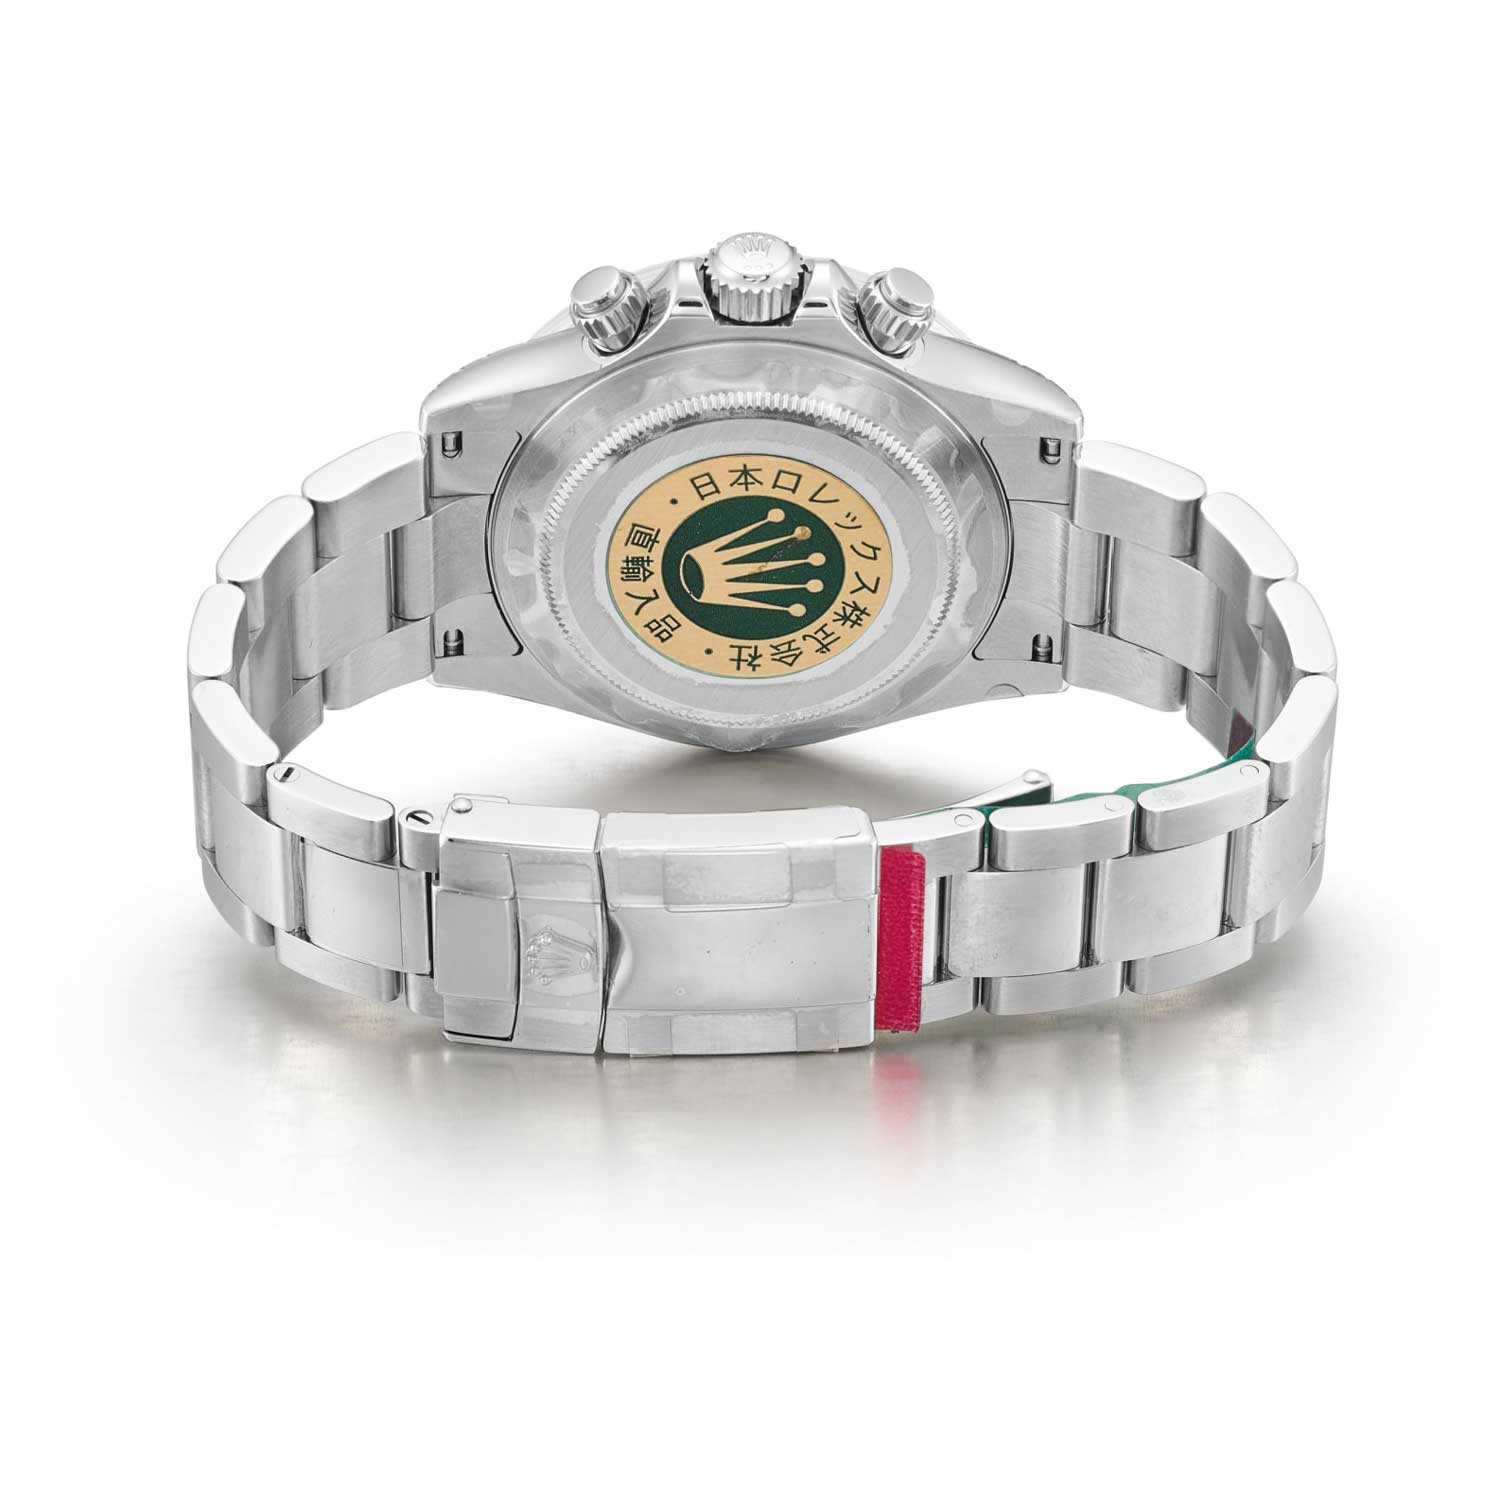 Rolex Cosmograph Daytona, Reference 116520 A Brand New Stainless Steel Chronograph Wristwatch With Bracelet, Circa 2006